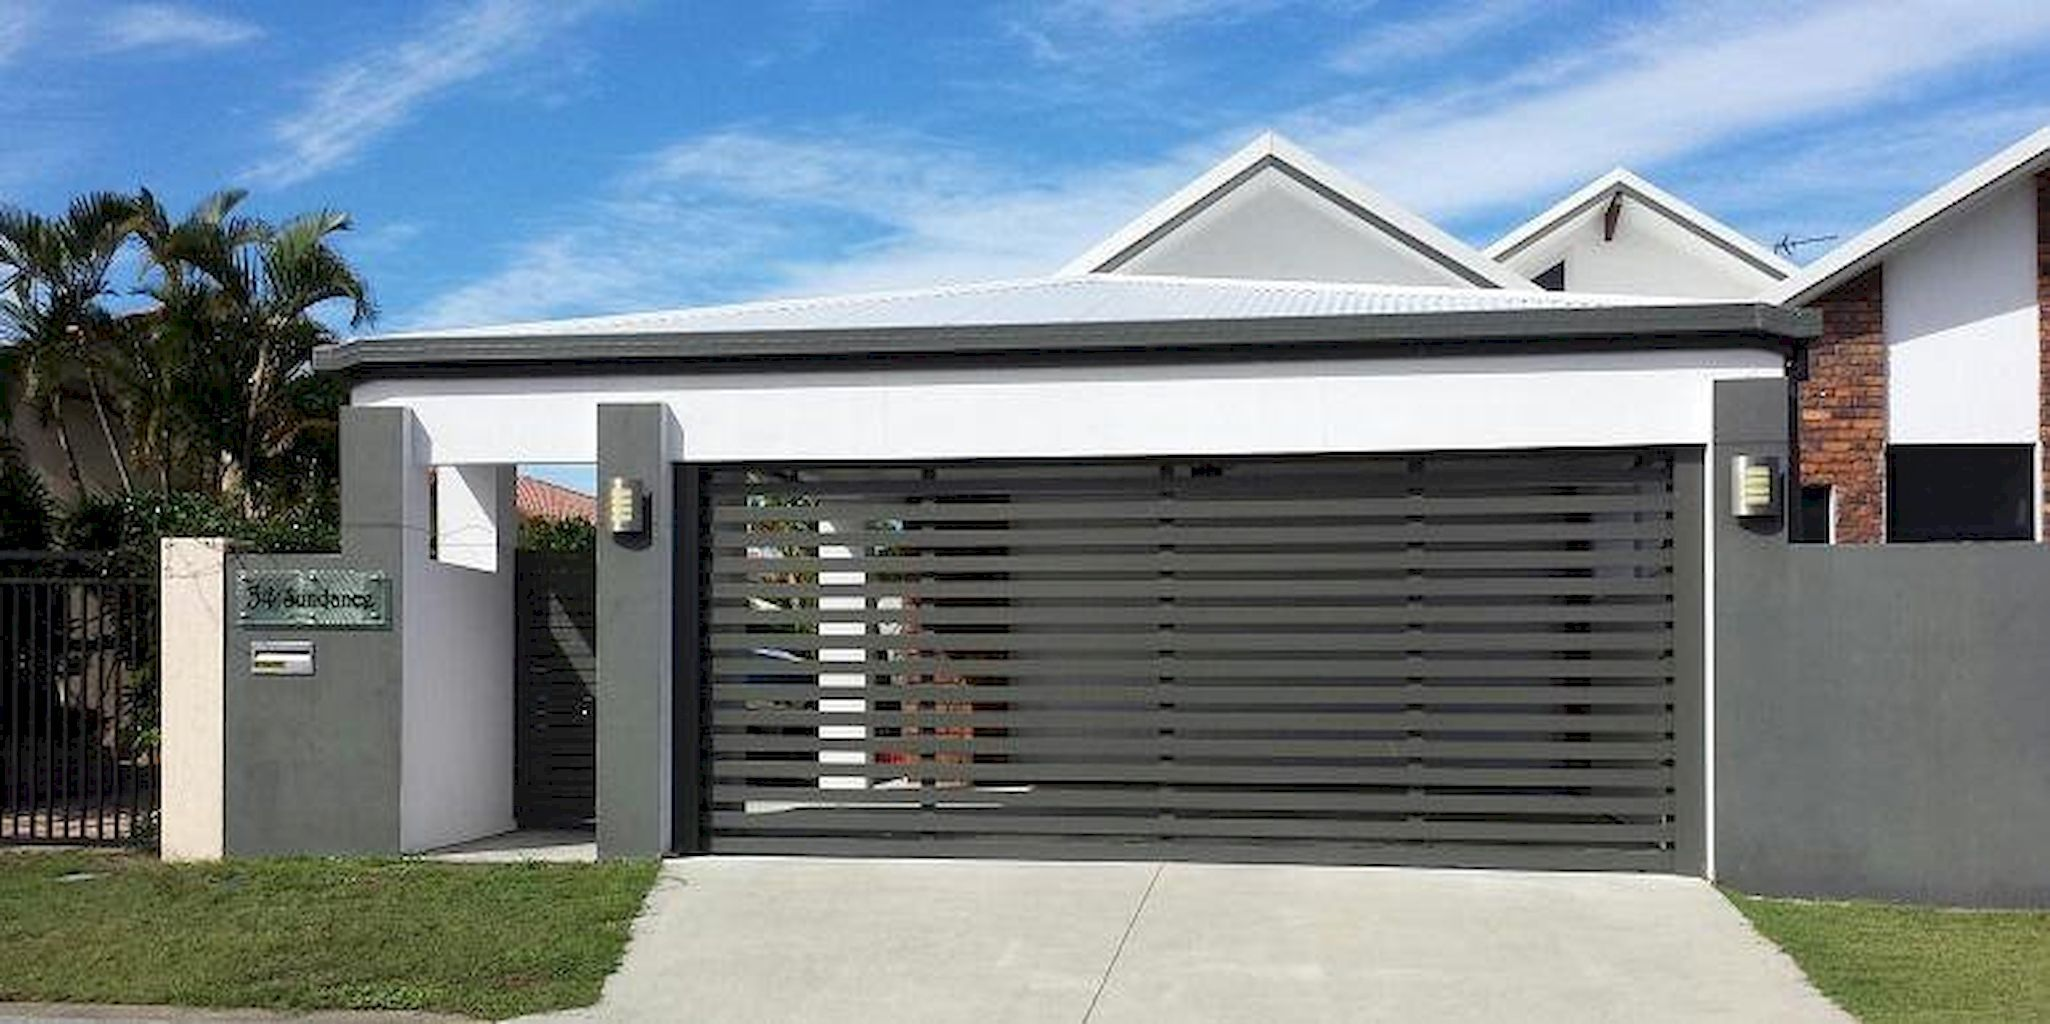 Agreeable Carport Garage On 55 Adorable Modern Carports Garage